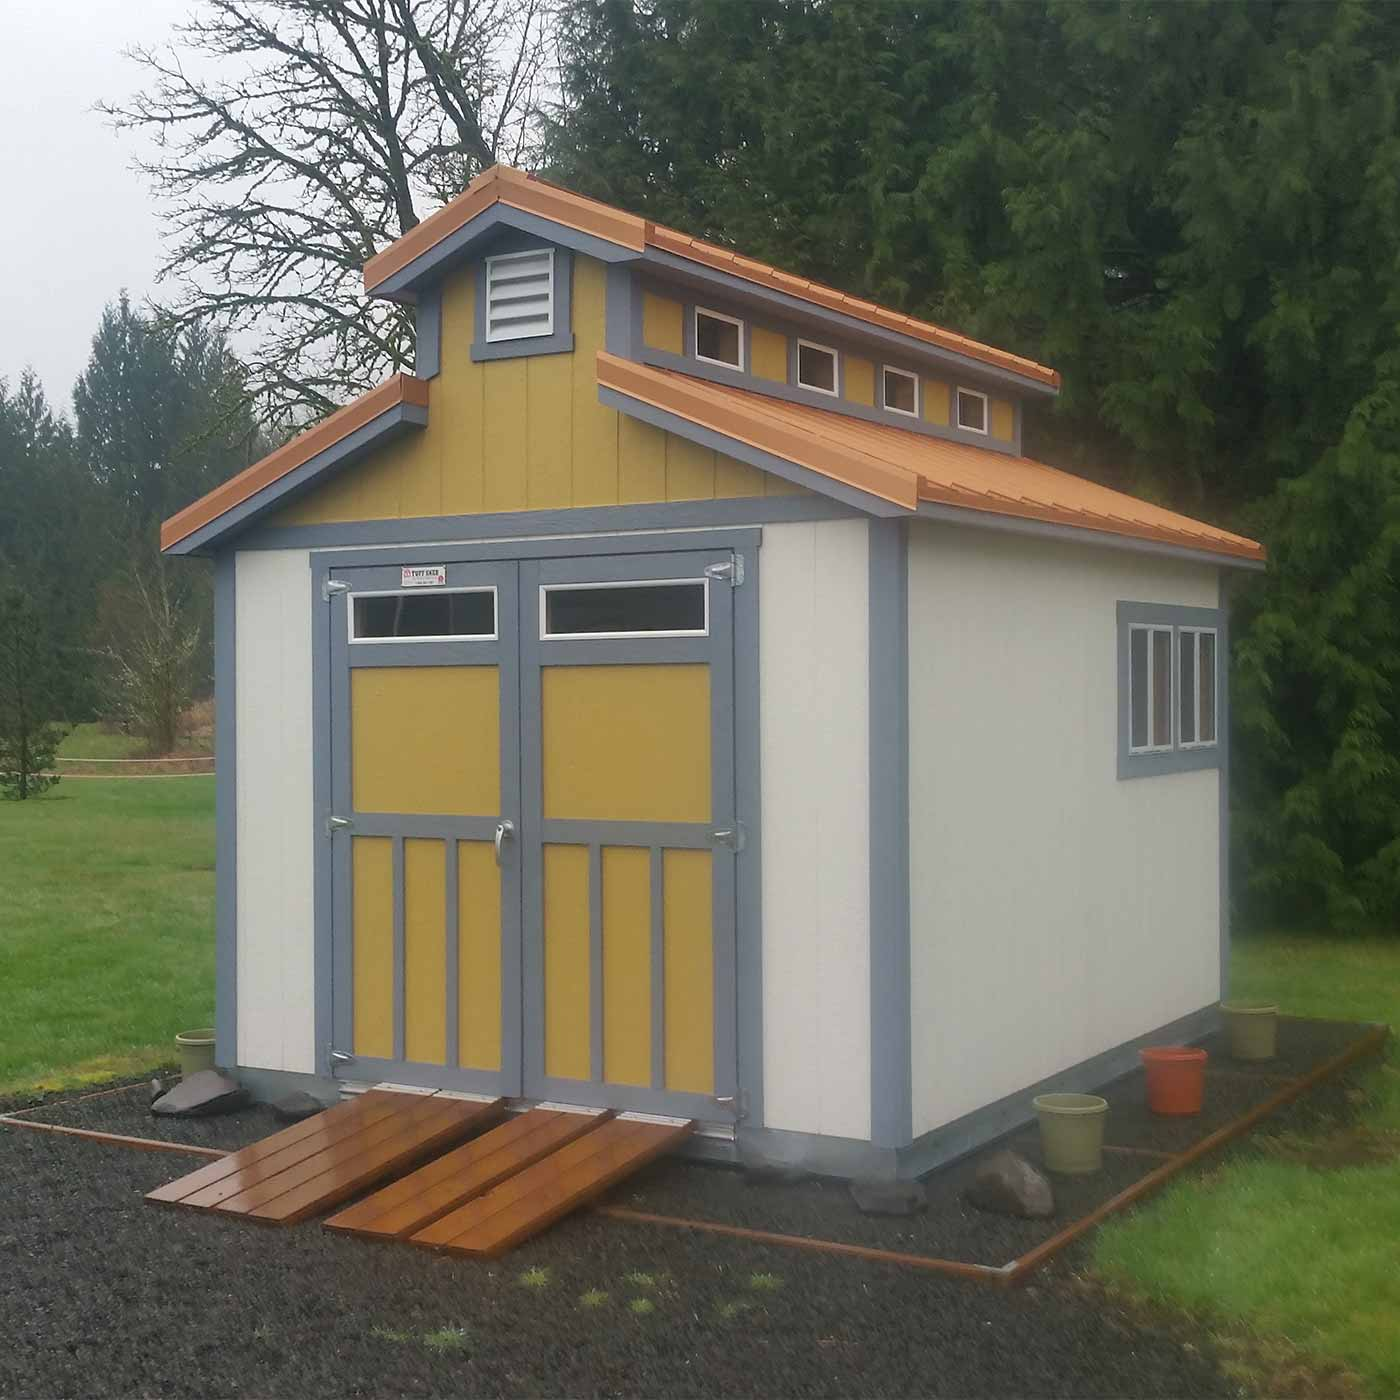 Storage sheds and buildings custom build options tuff shed for Tuff sheds